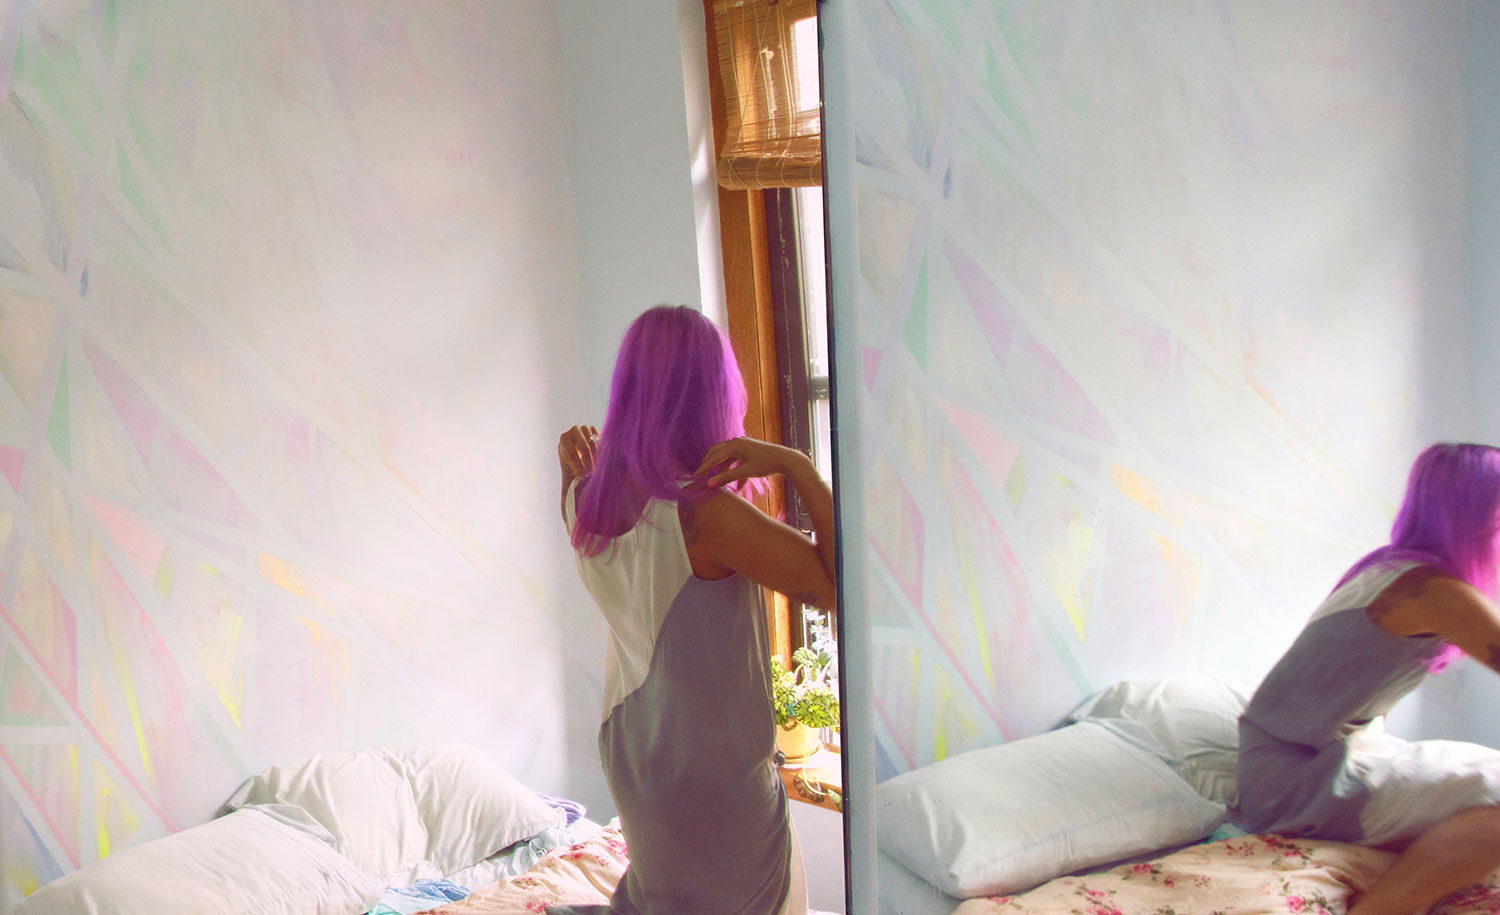 Abstract geometric prism wall art mural painted in pastel colors located in NYC bedroom, styled dreamy interior design shoot with floral bedding, model has magenta pink dyed hair, arm tattoos and silk designer dress.